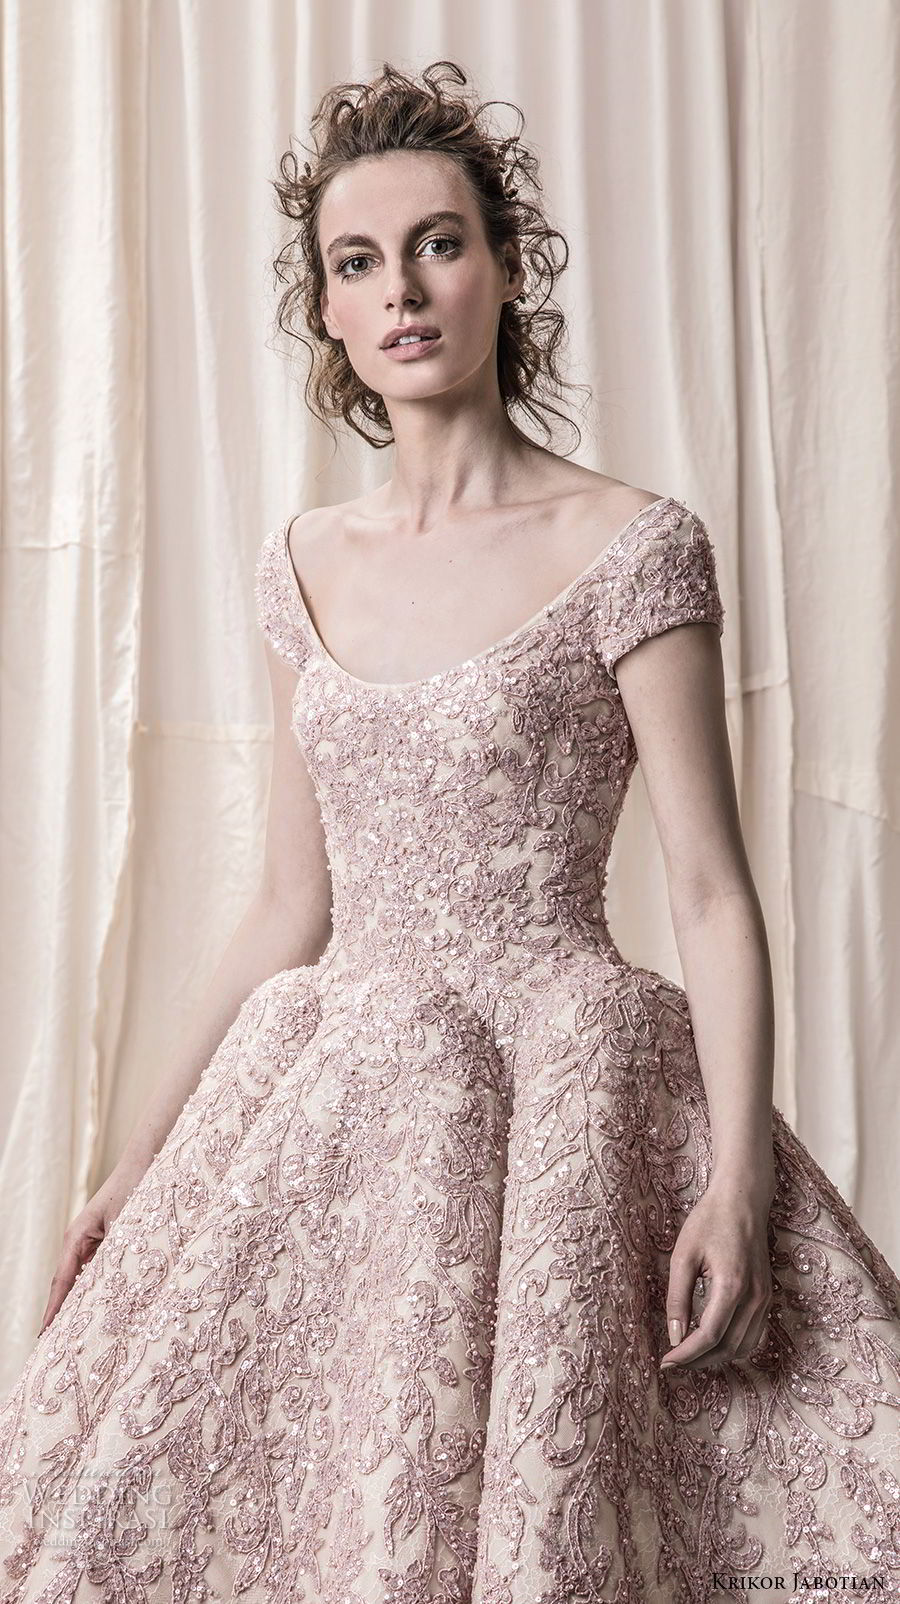 krikor jabotian spring 2018 bridal cap sleeves scoop neckline heavily embeliished blush color glamorous princess ball gown a  line wedding dress open scoop back royal train (08) zv